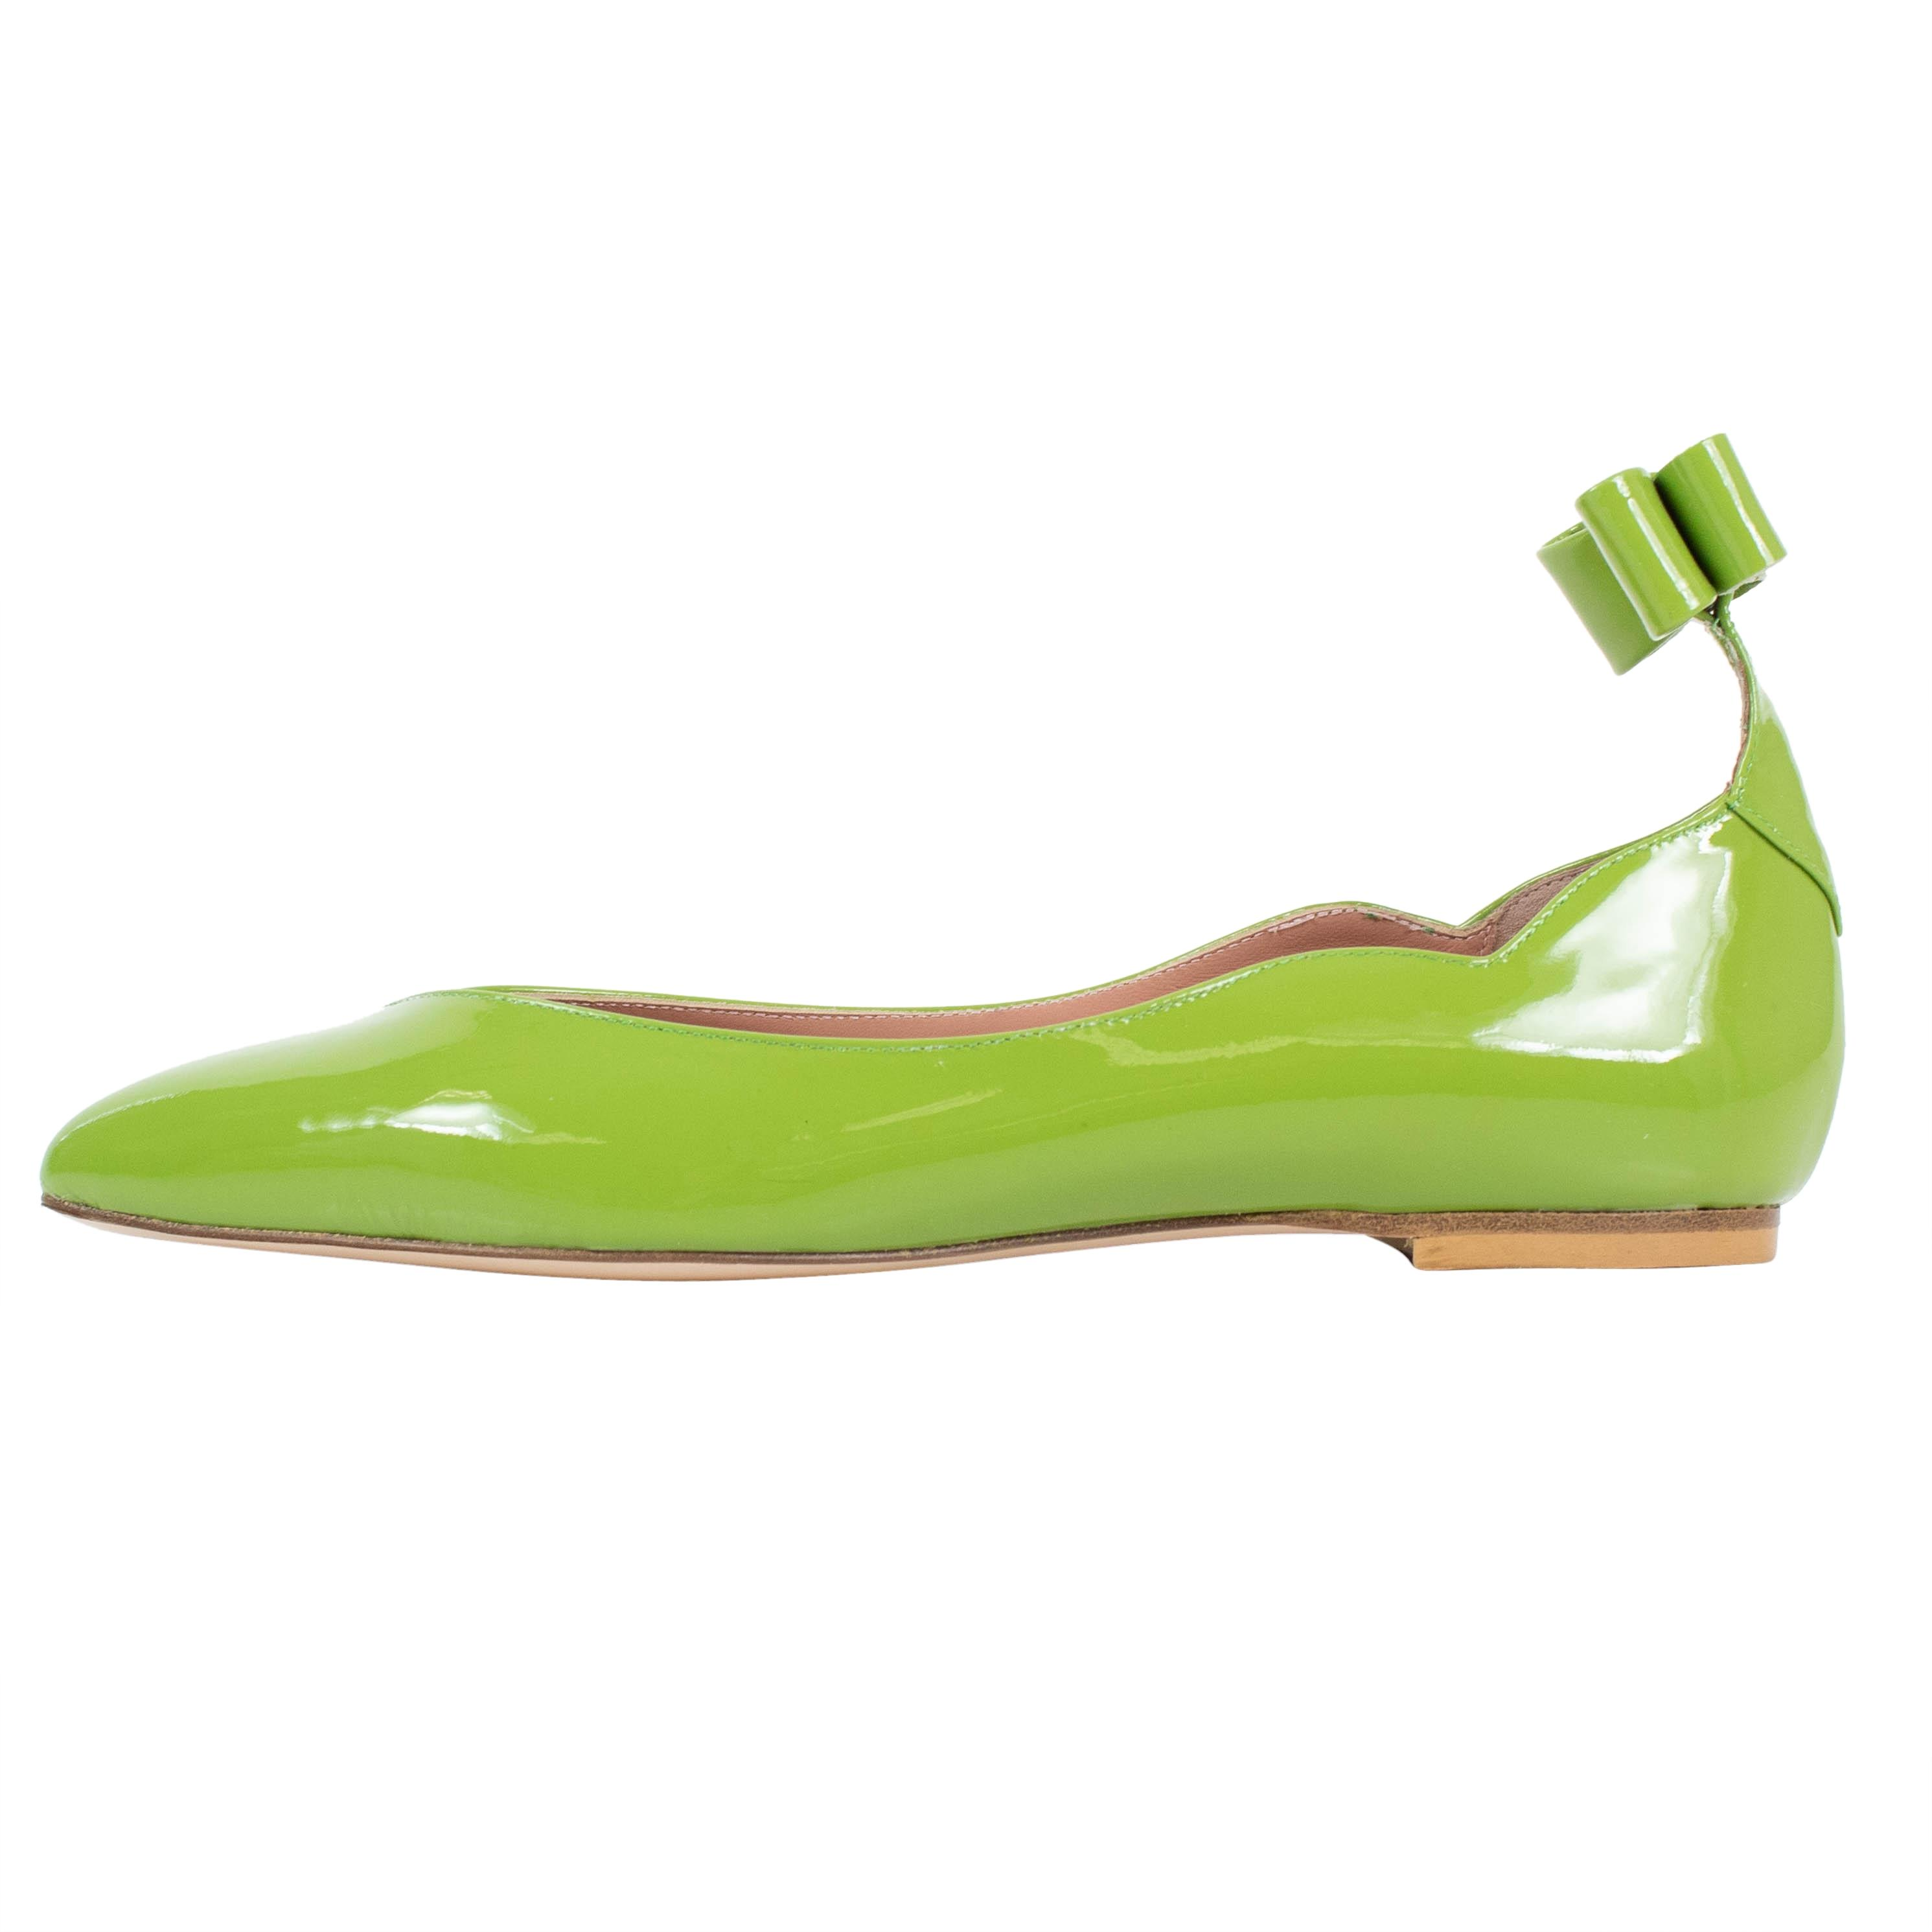 Rouge avec  valentino Vert  avec Rouge arc cuirs apparteHommes ts ordinaires (taille us 7 m, b) 24b2a0